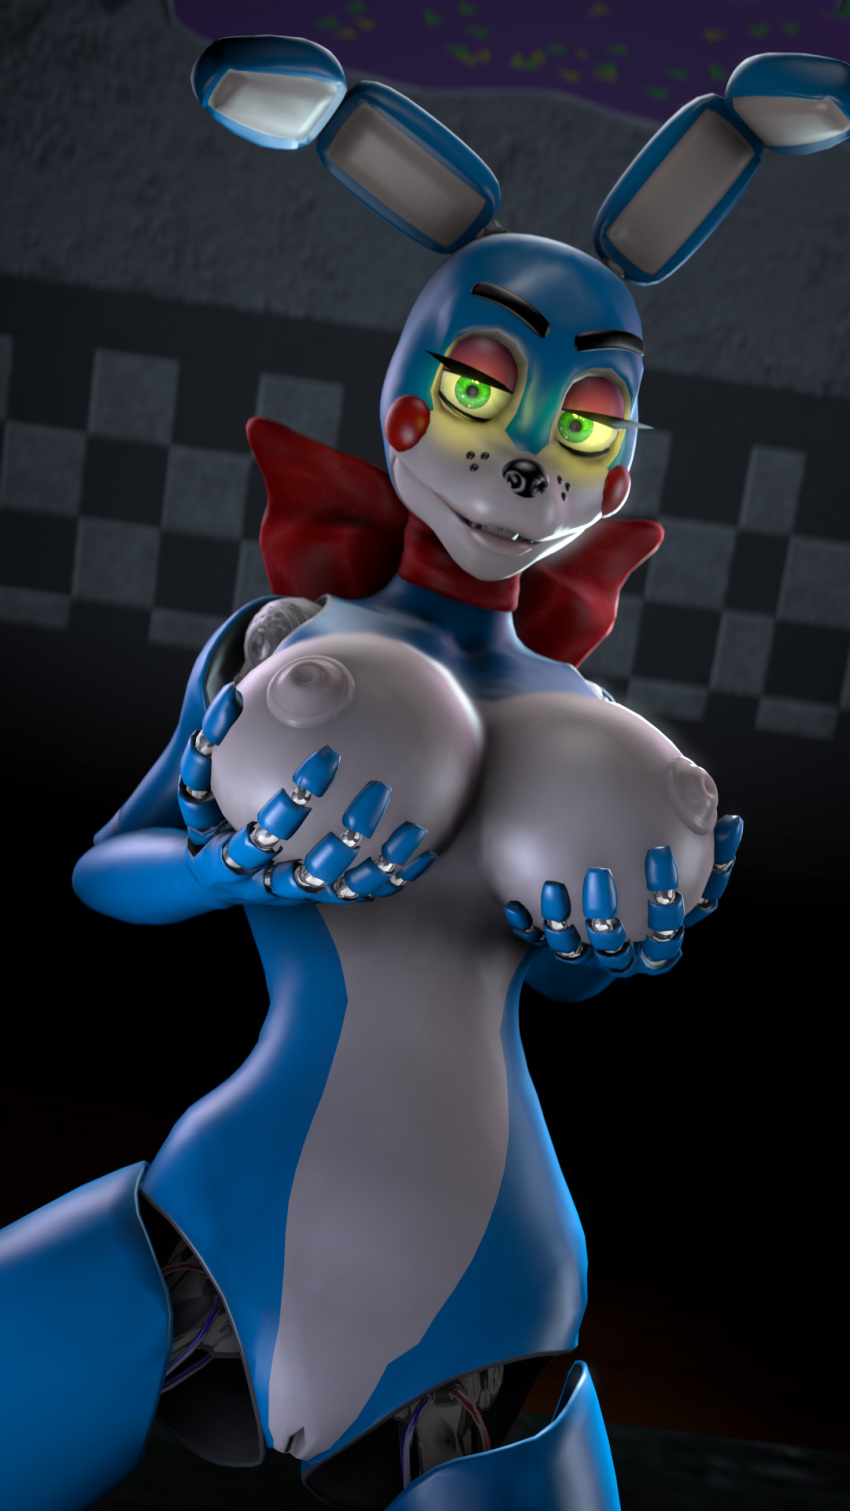 bonnie anime at five nights toy Runescape how to sheath weapon